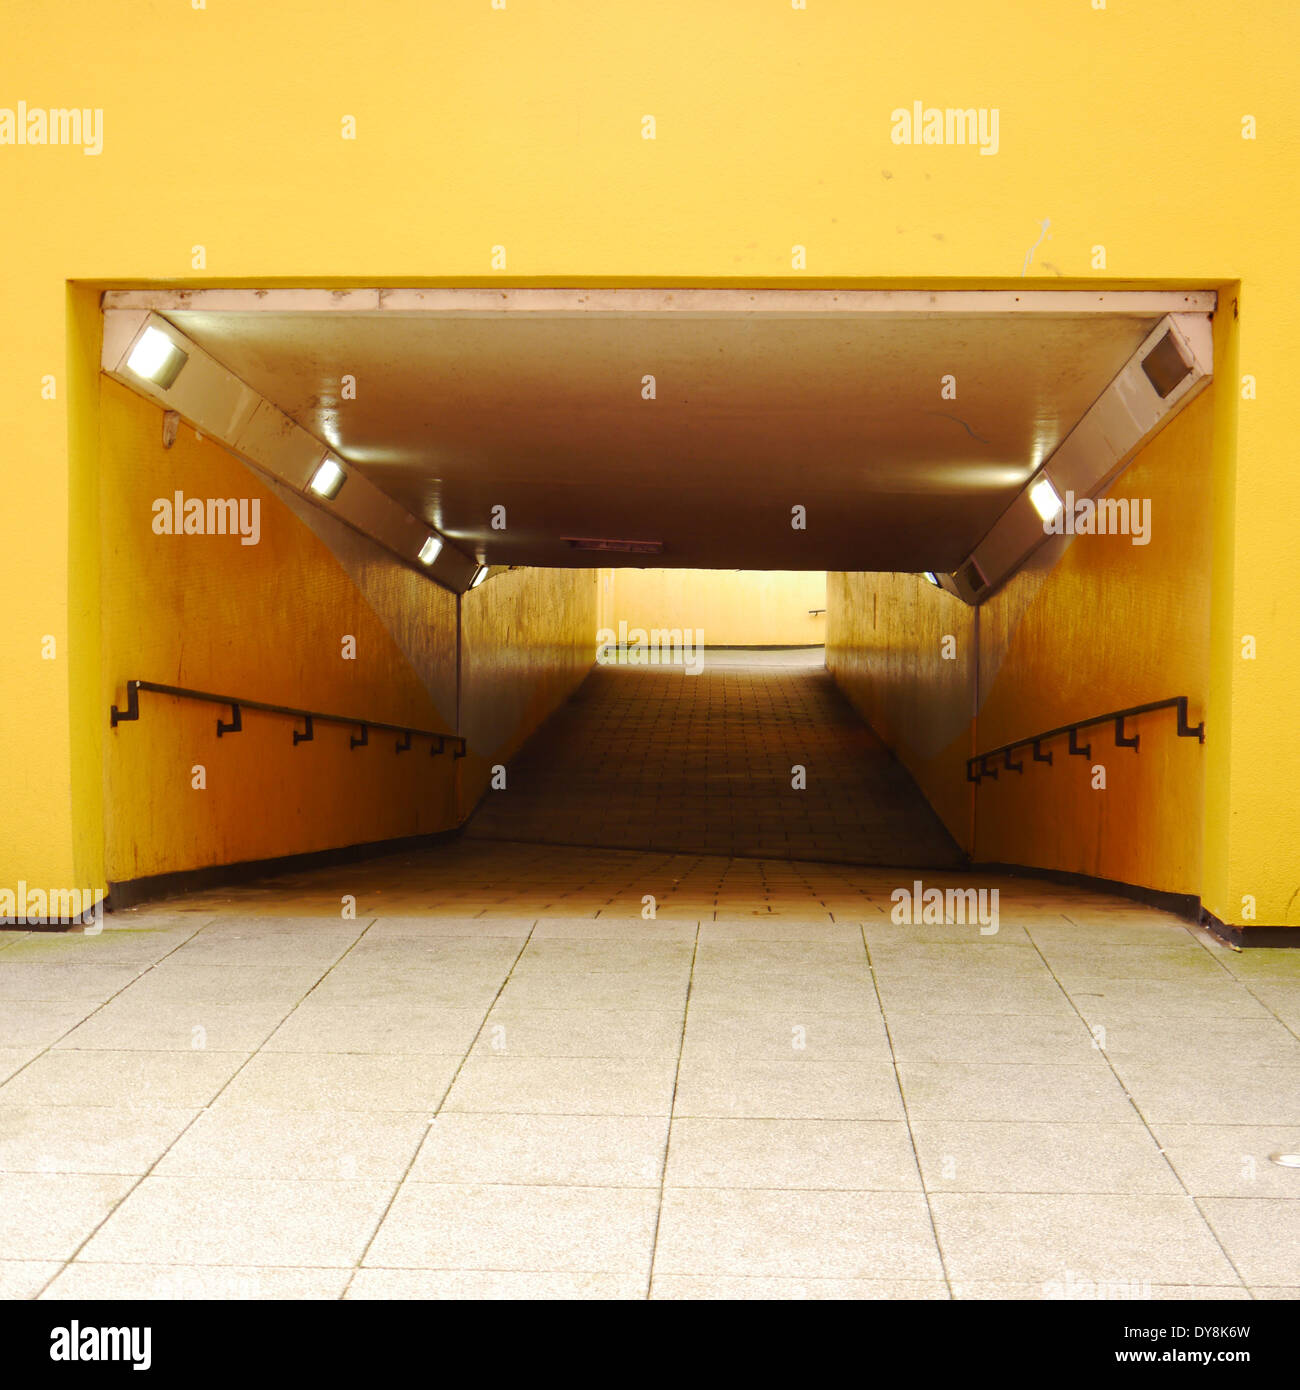 Pedestrian underpass / subway, 55°North, Newcastle upon Tyne, England, UK - Stock Image